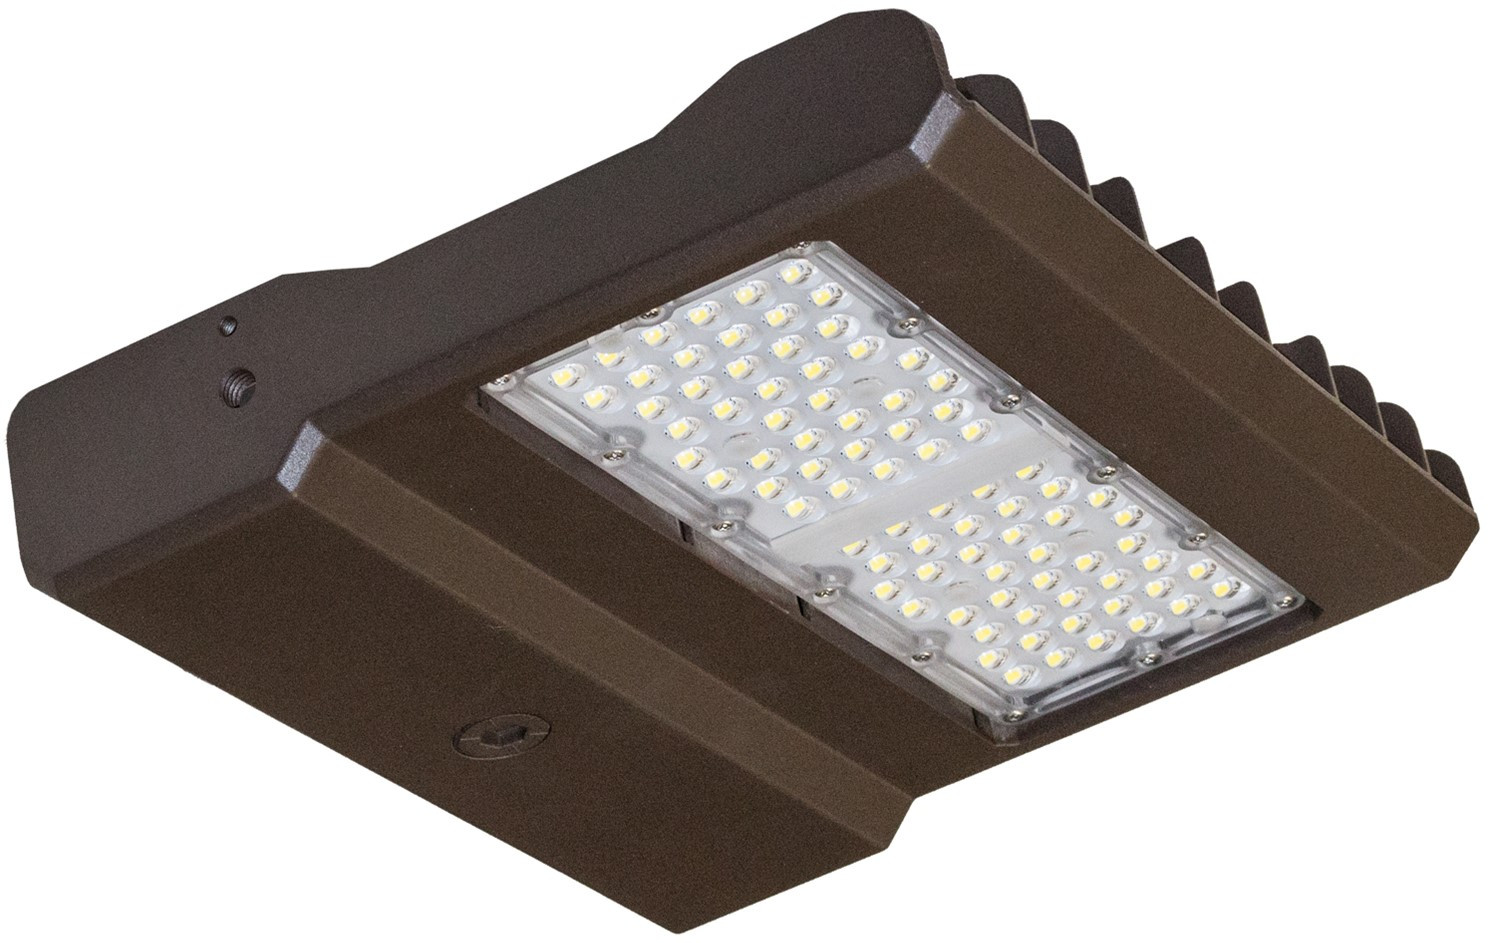 LED Parking Lot Flood Light - Can be used for all LED Outdoor Flood Lighting Requirements, 150 Watt - 15,000 Lumens, With Side Extension Arm for 4 Inch Pole